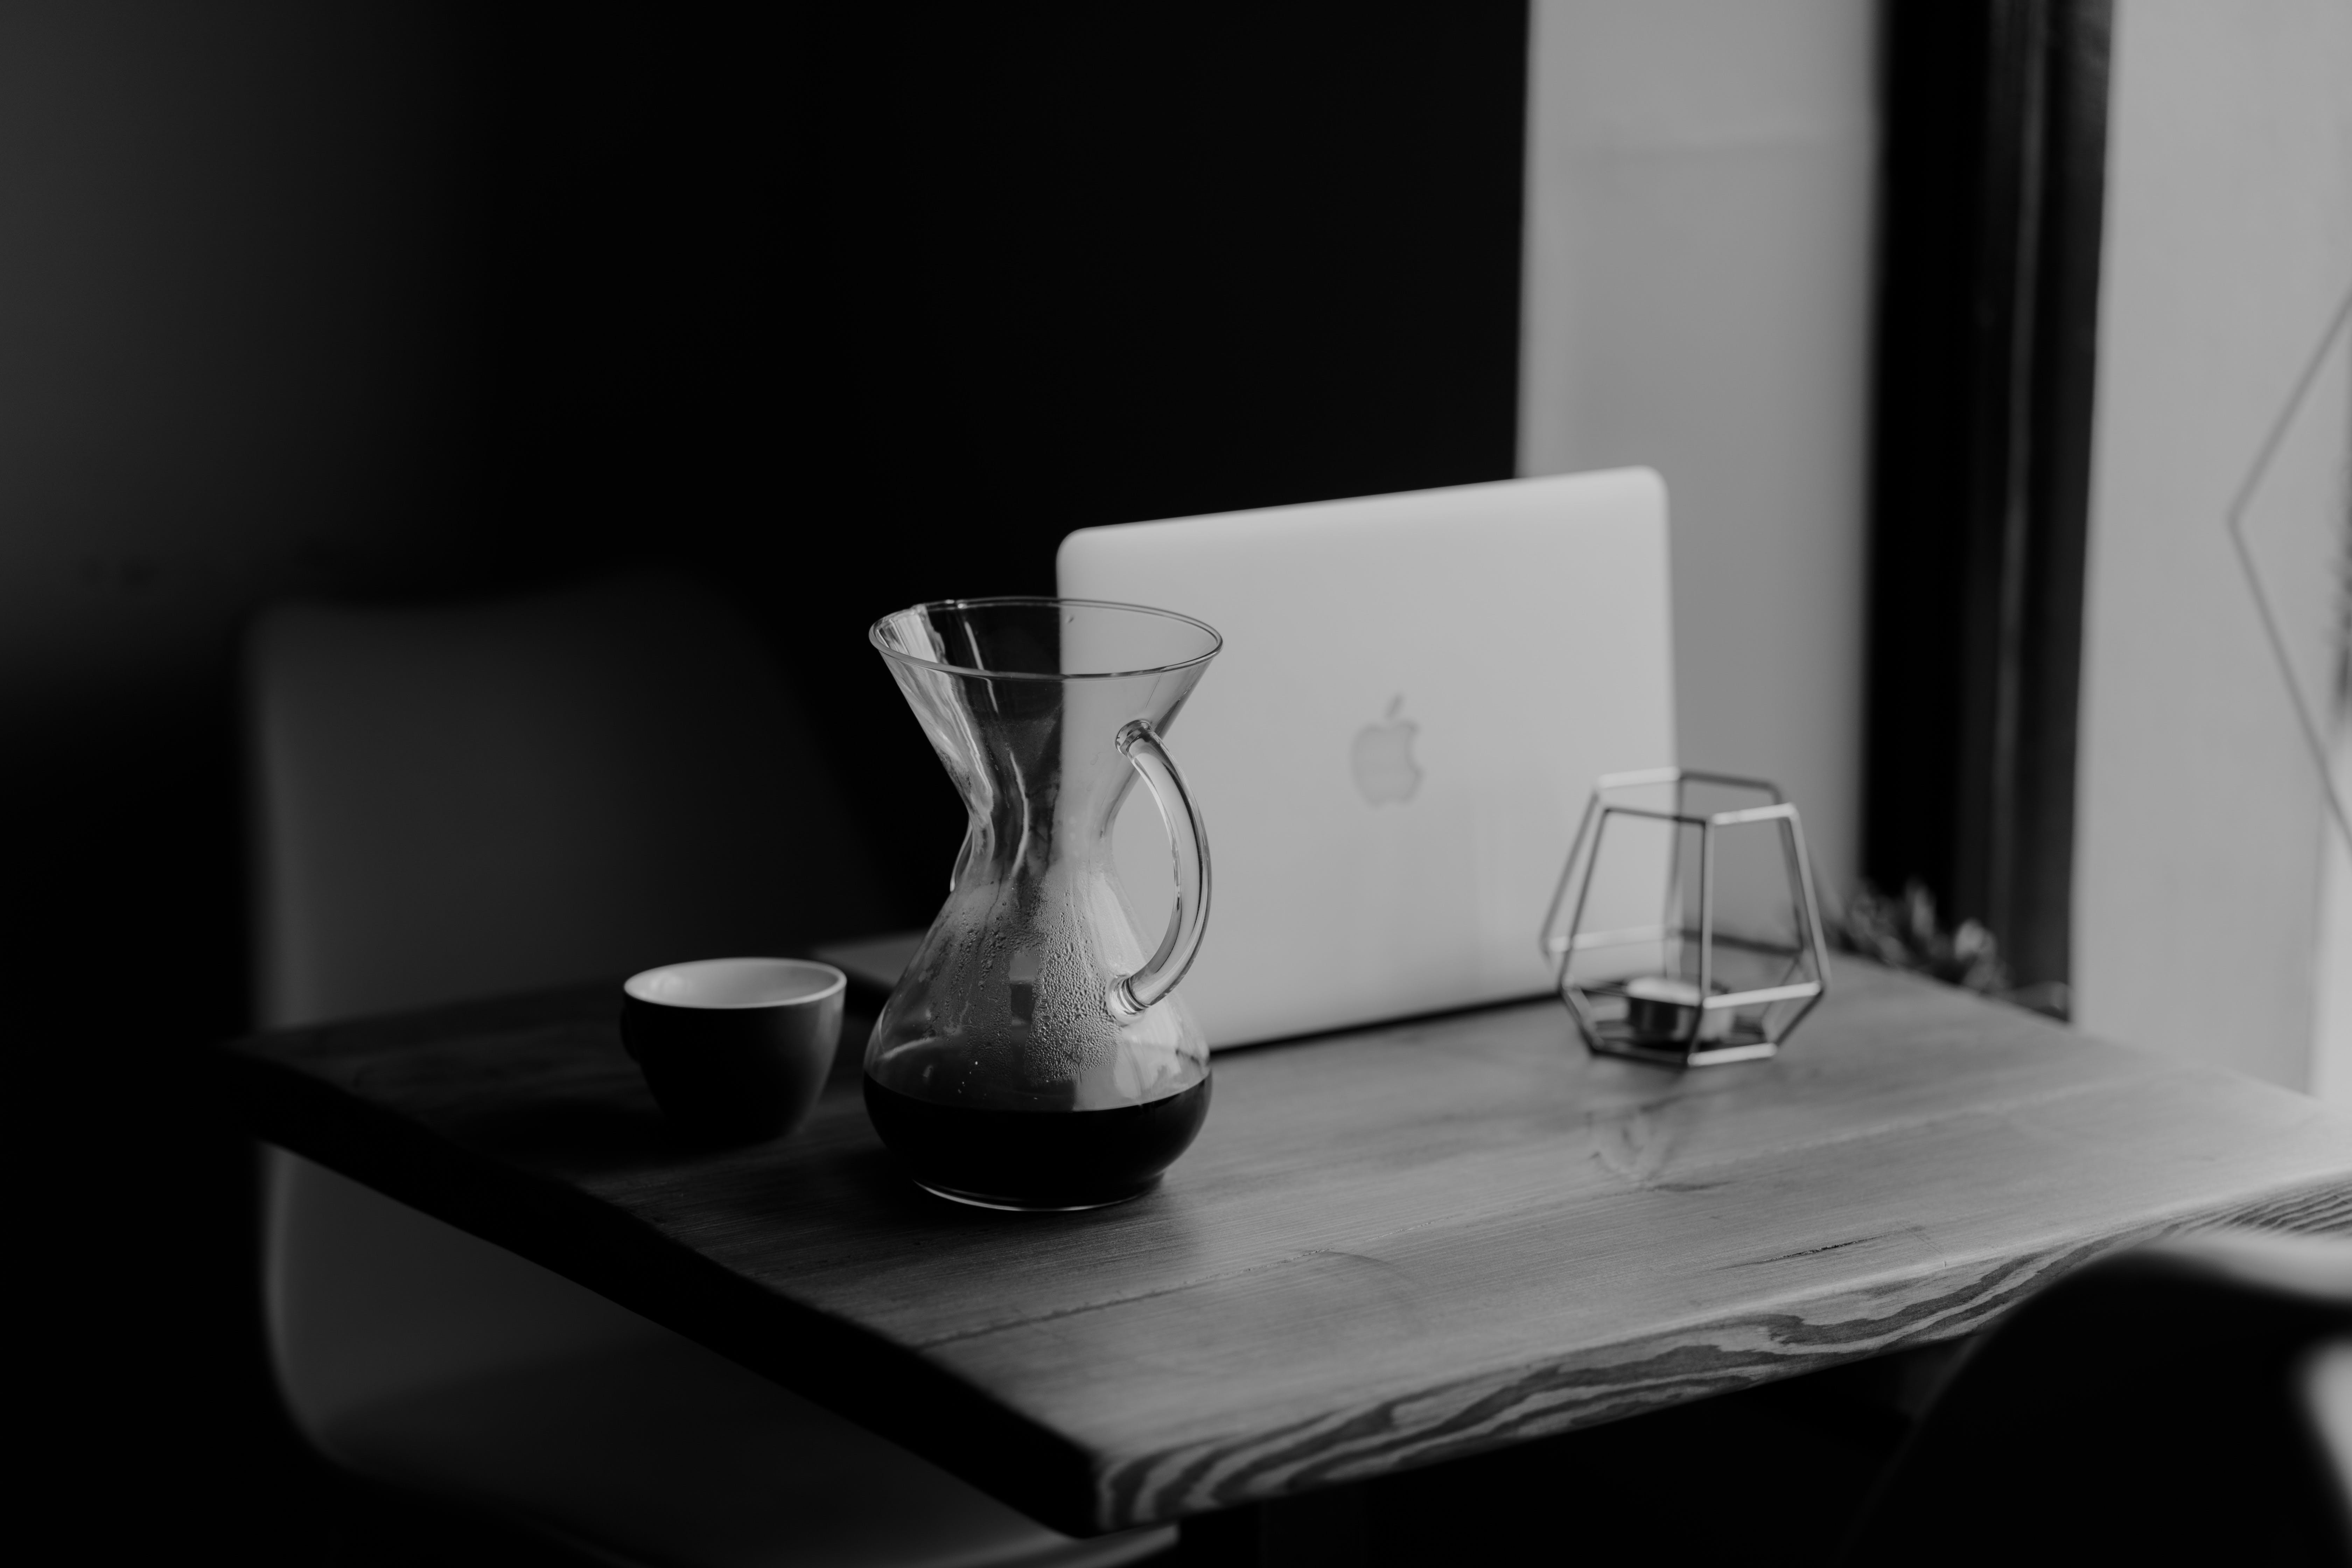 Macbook White Beside Clear Glass Pitcher